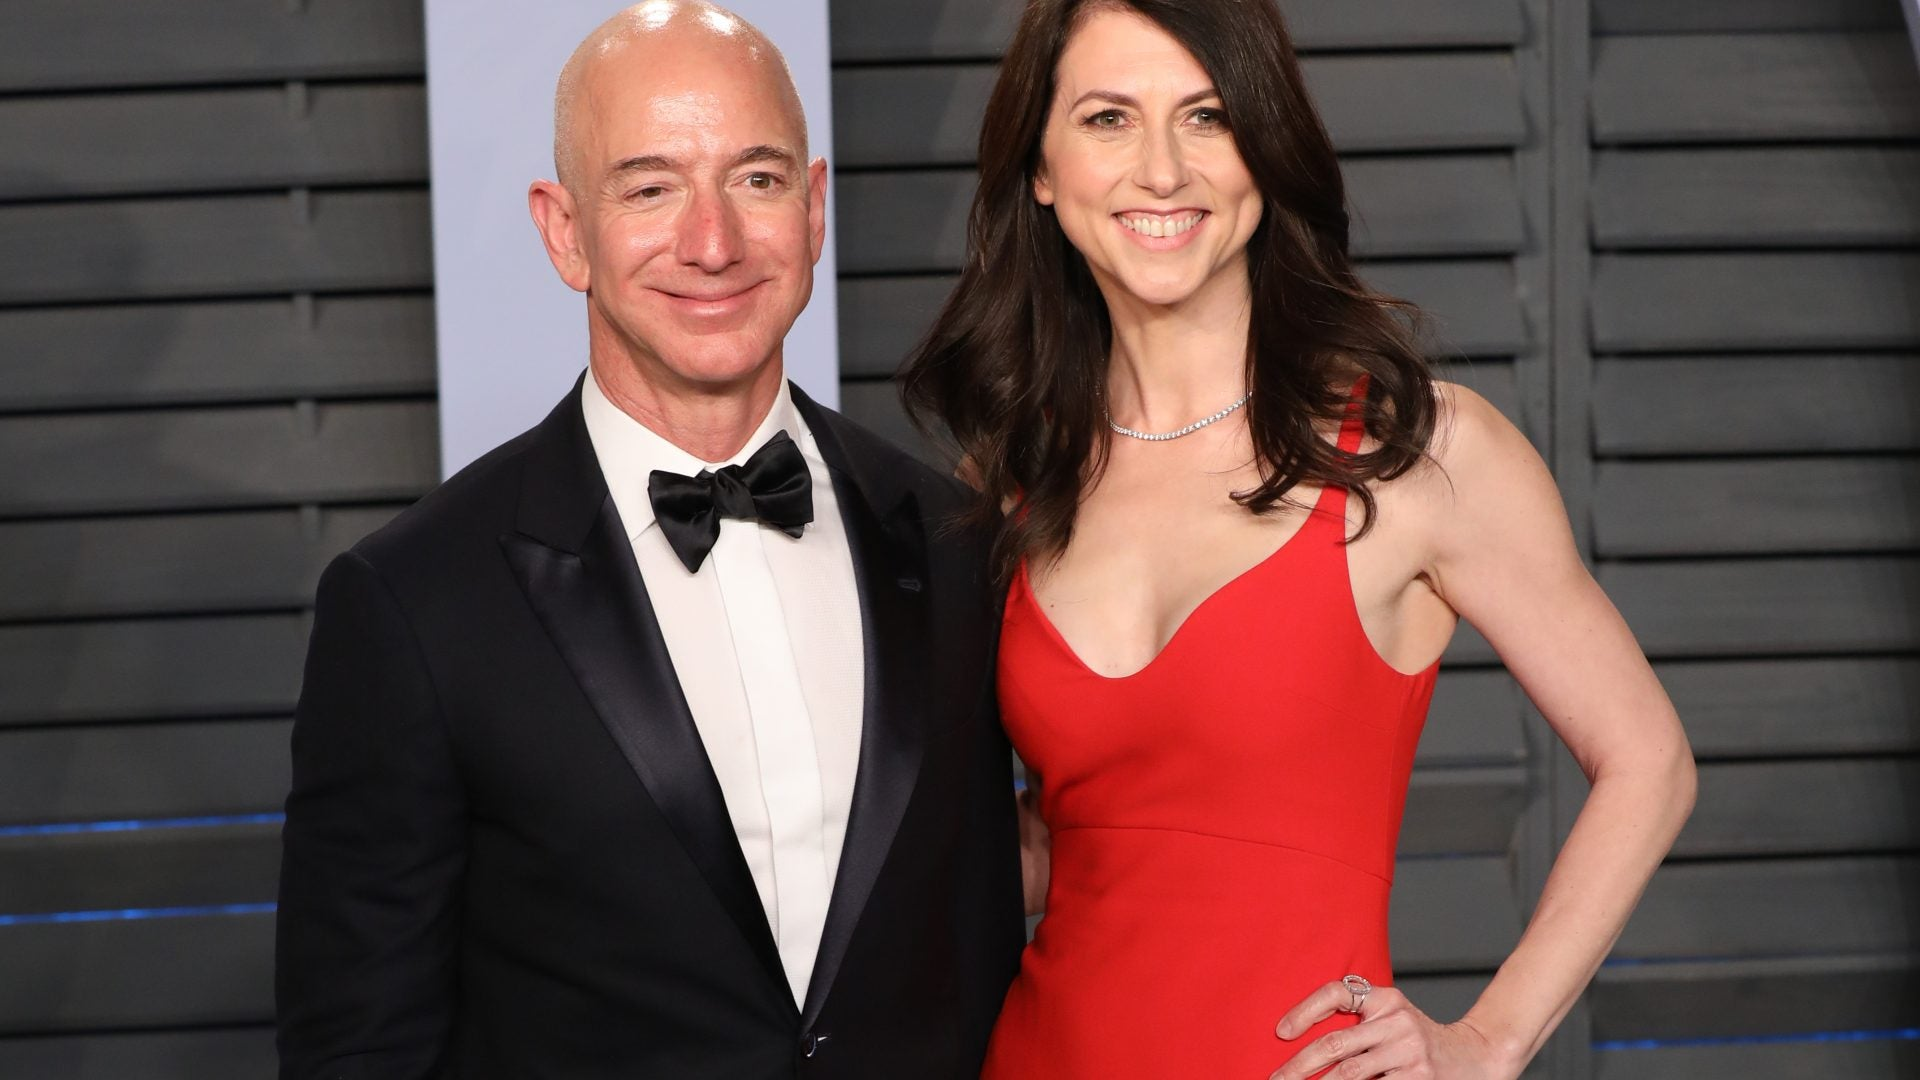 Former Wife Of Amazon Tycoon Showers HBCUs With Multi-Million Dollar Donations